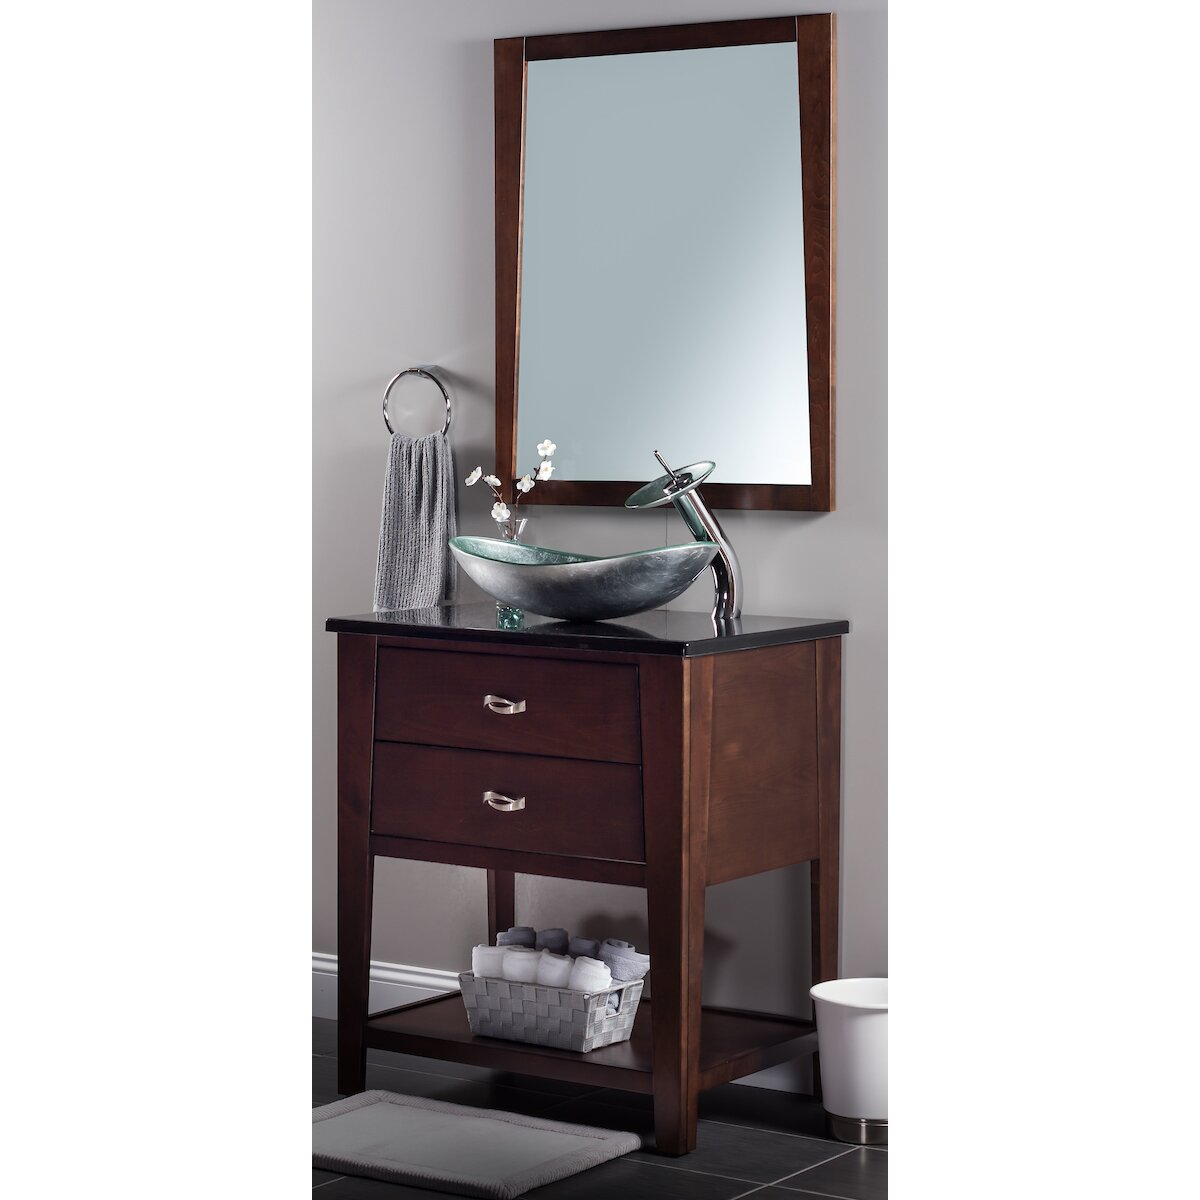 Novatto argento oval vessel bathroom sink set for Bath toilet and sink sets